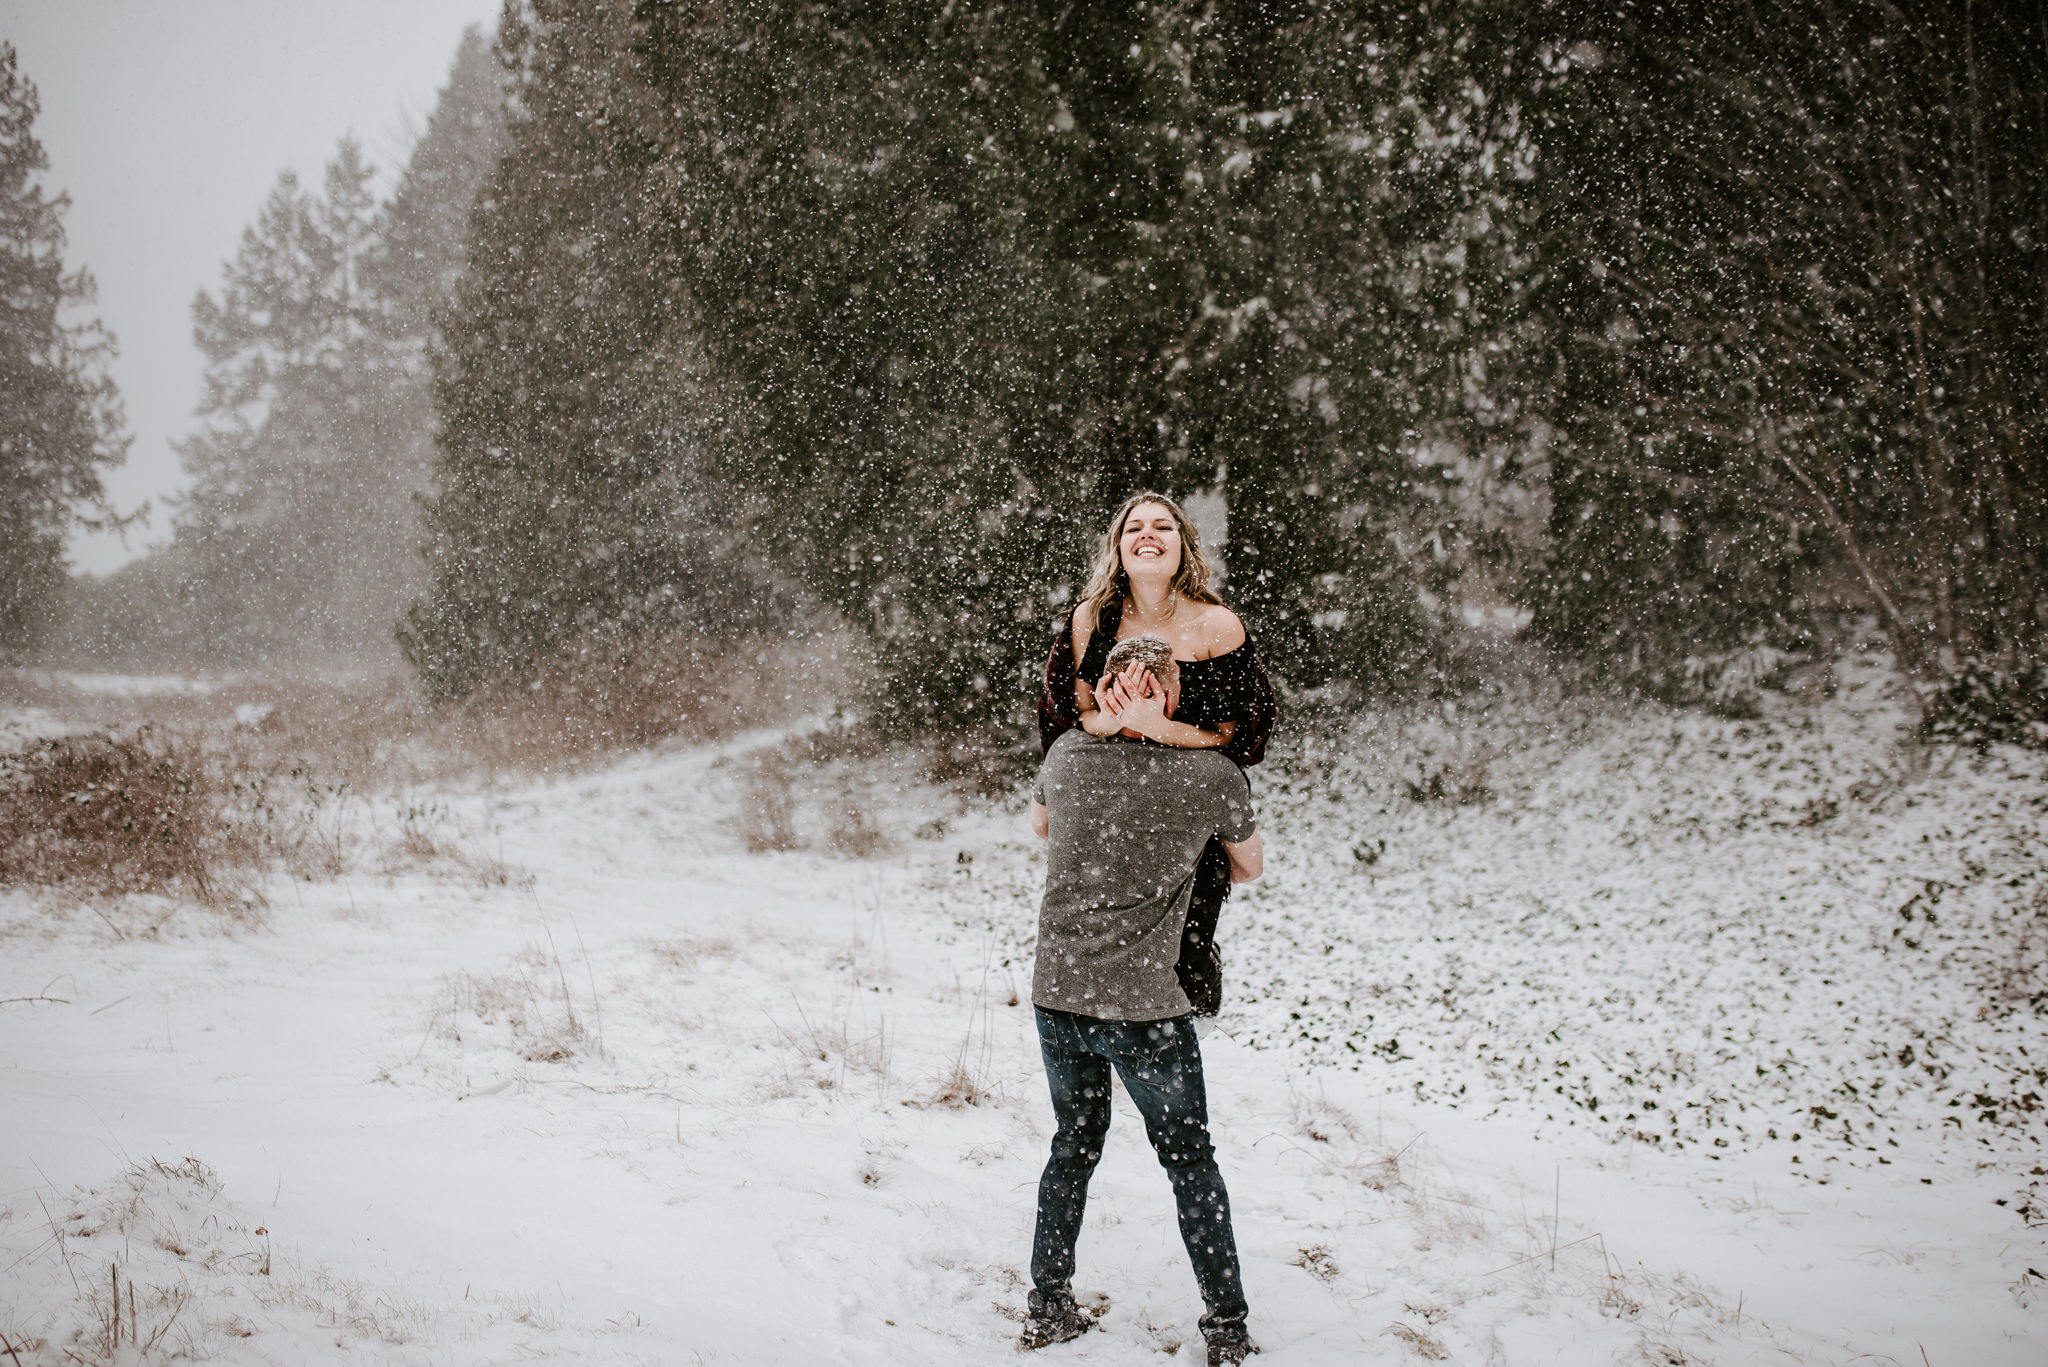 paige_lorraine_photography (1 of 1)-48.jpg